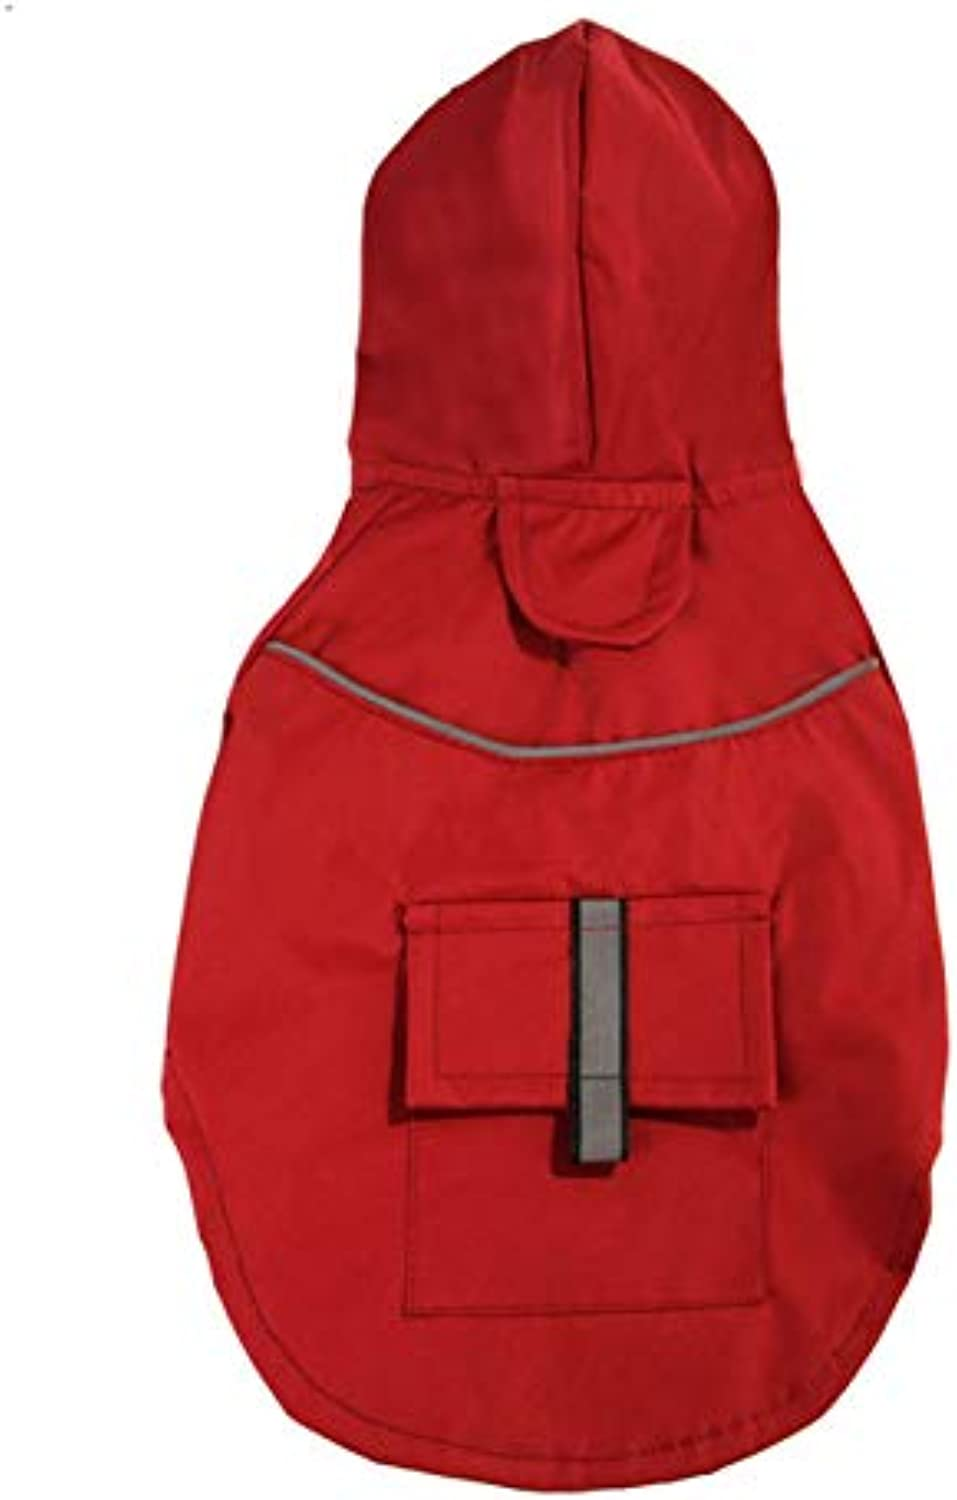 Dog Raincoats Waterproof, Dog Raincoat with Hood Collar Hole Pockets, Lightweight Packable Outdoor Dog Hooded Raincoat, Small Or Medium Dogs,Red,S